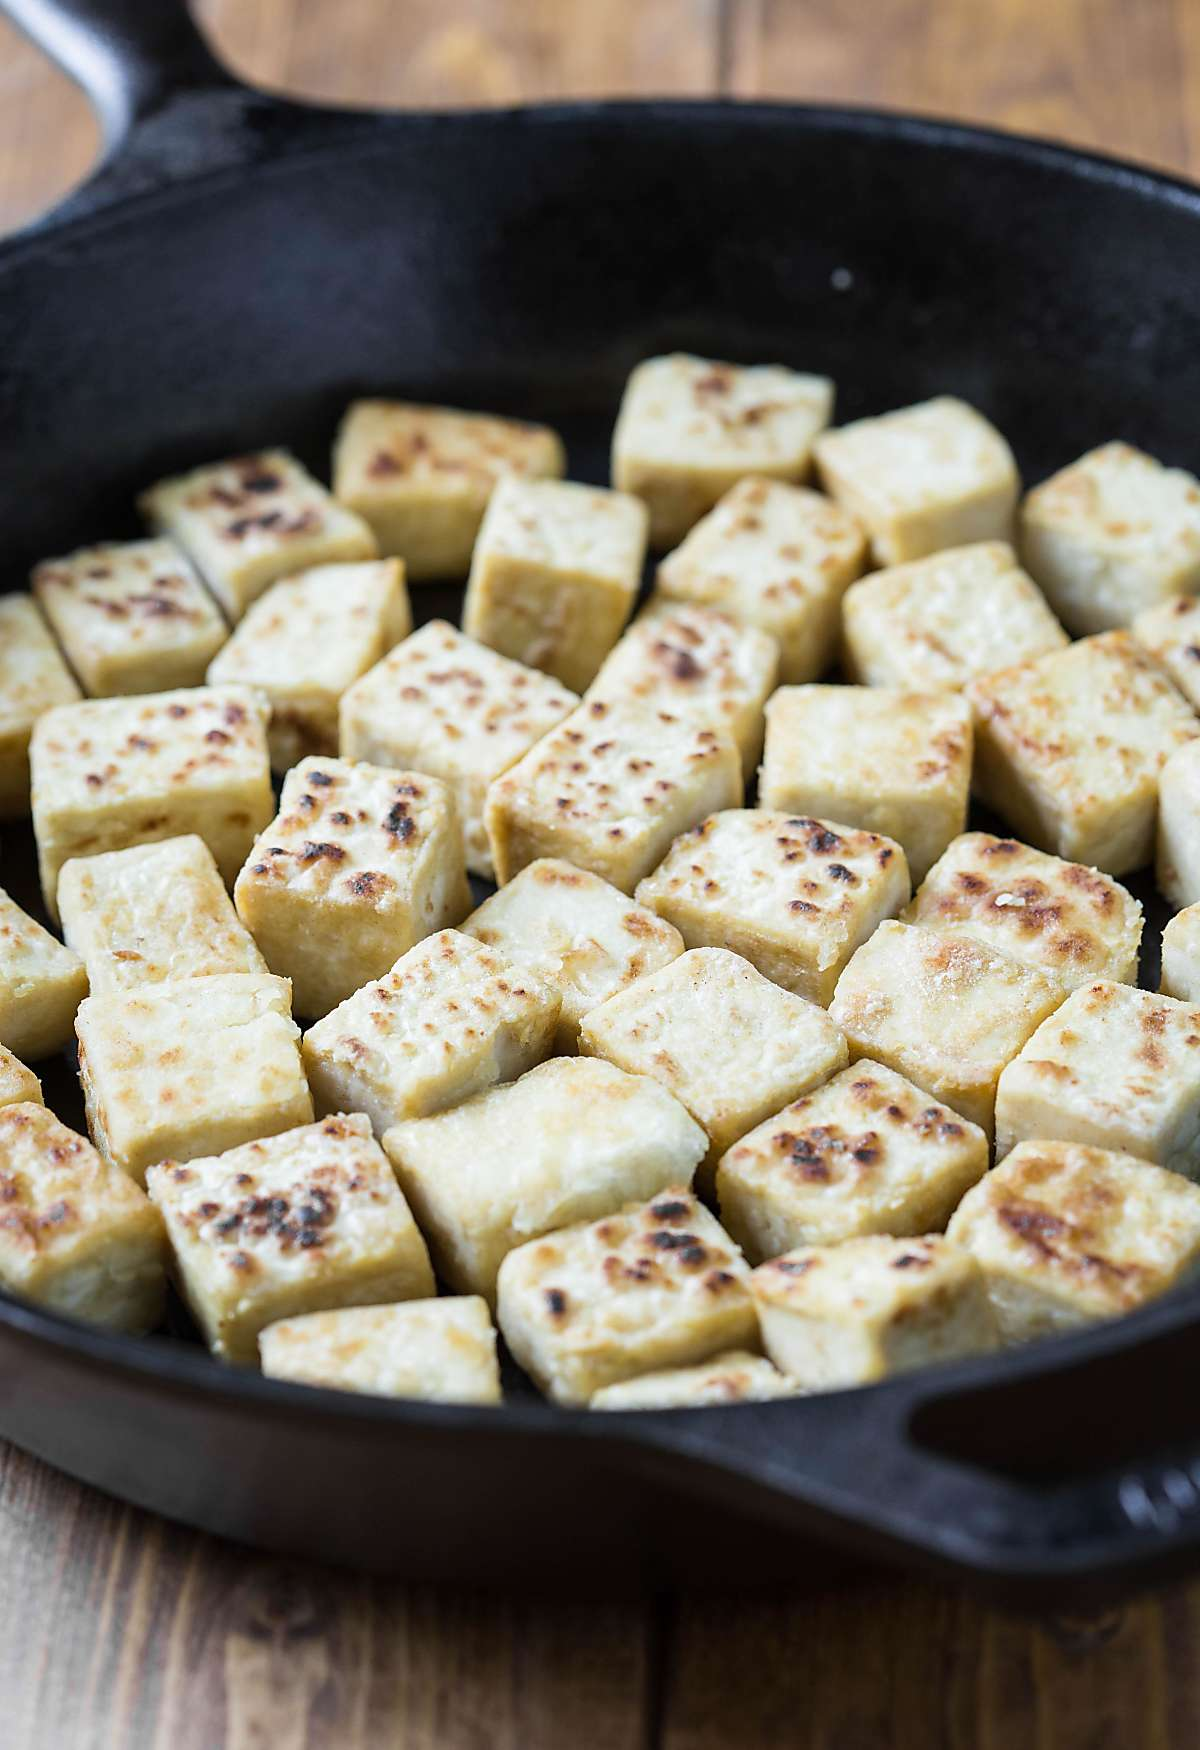 Cooking tofu in a cast iron skillet to form a crust.